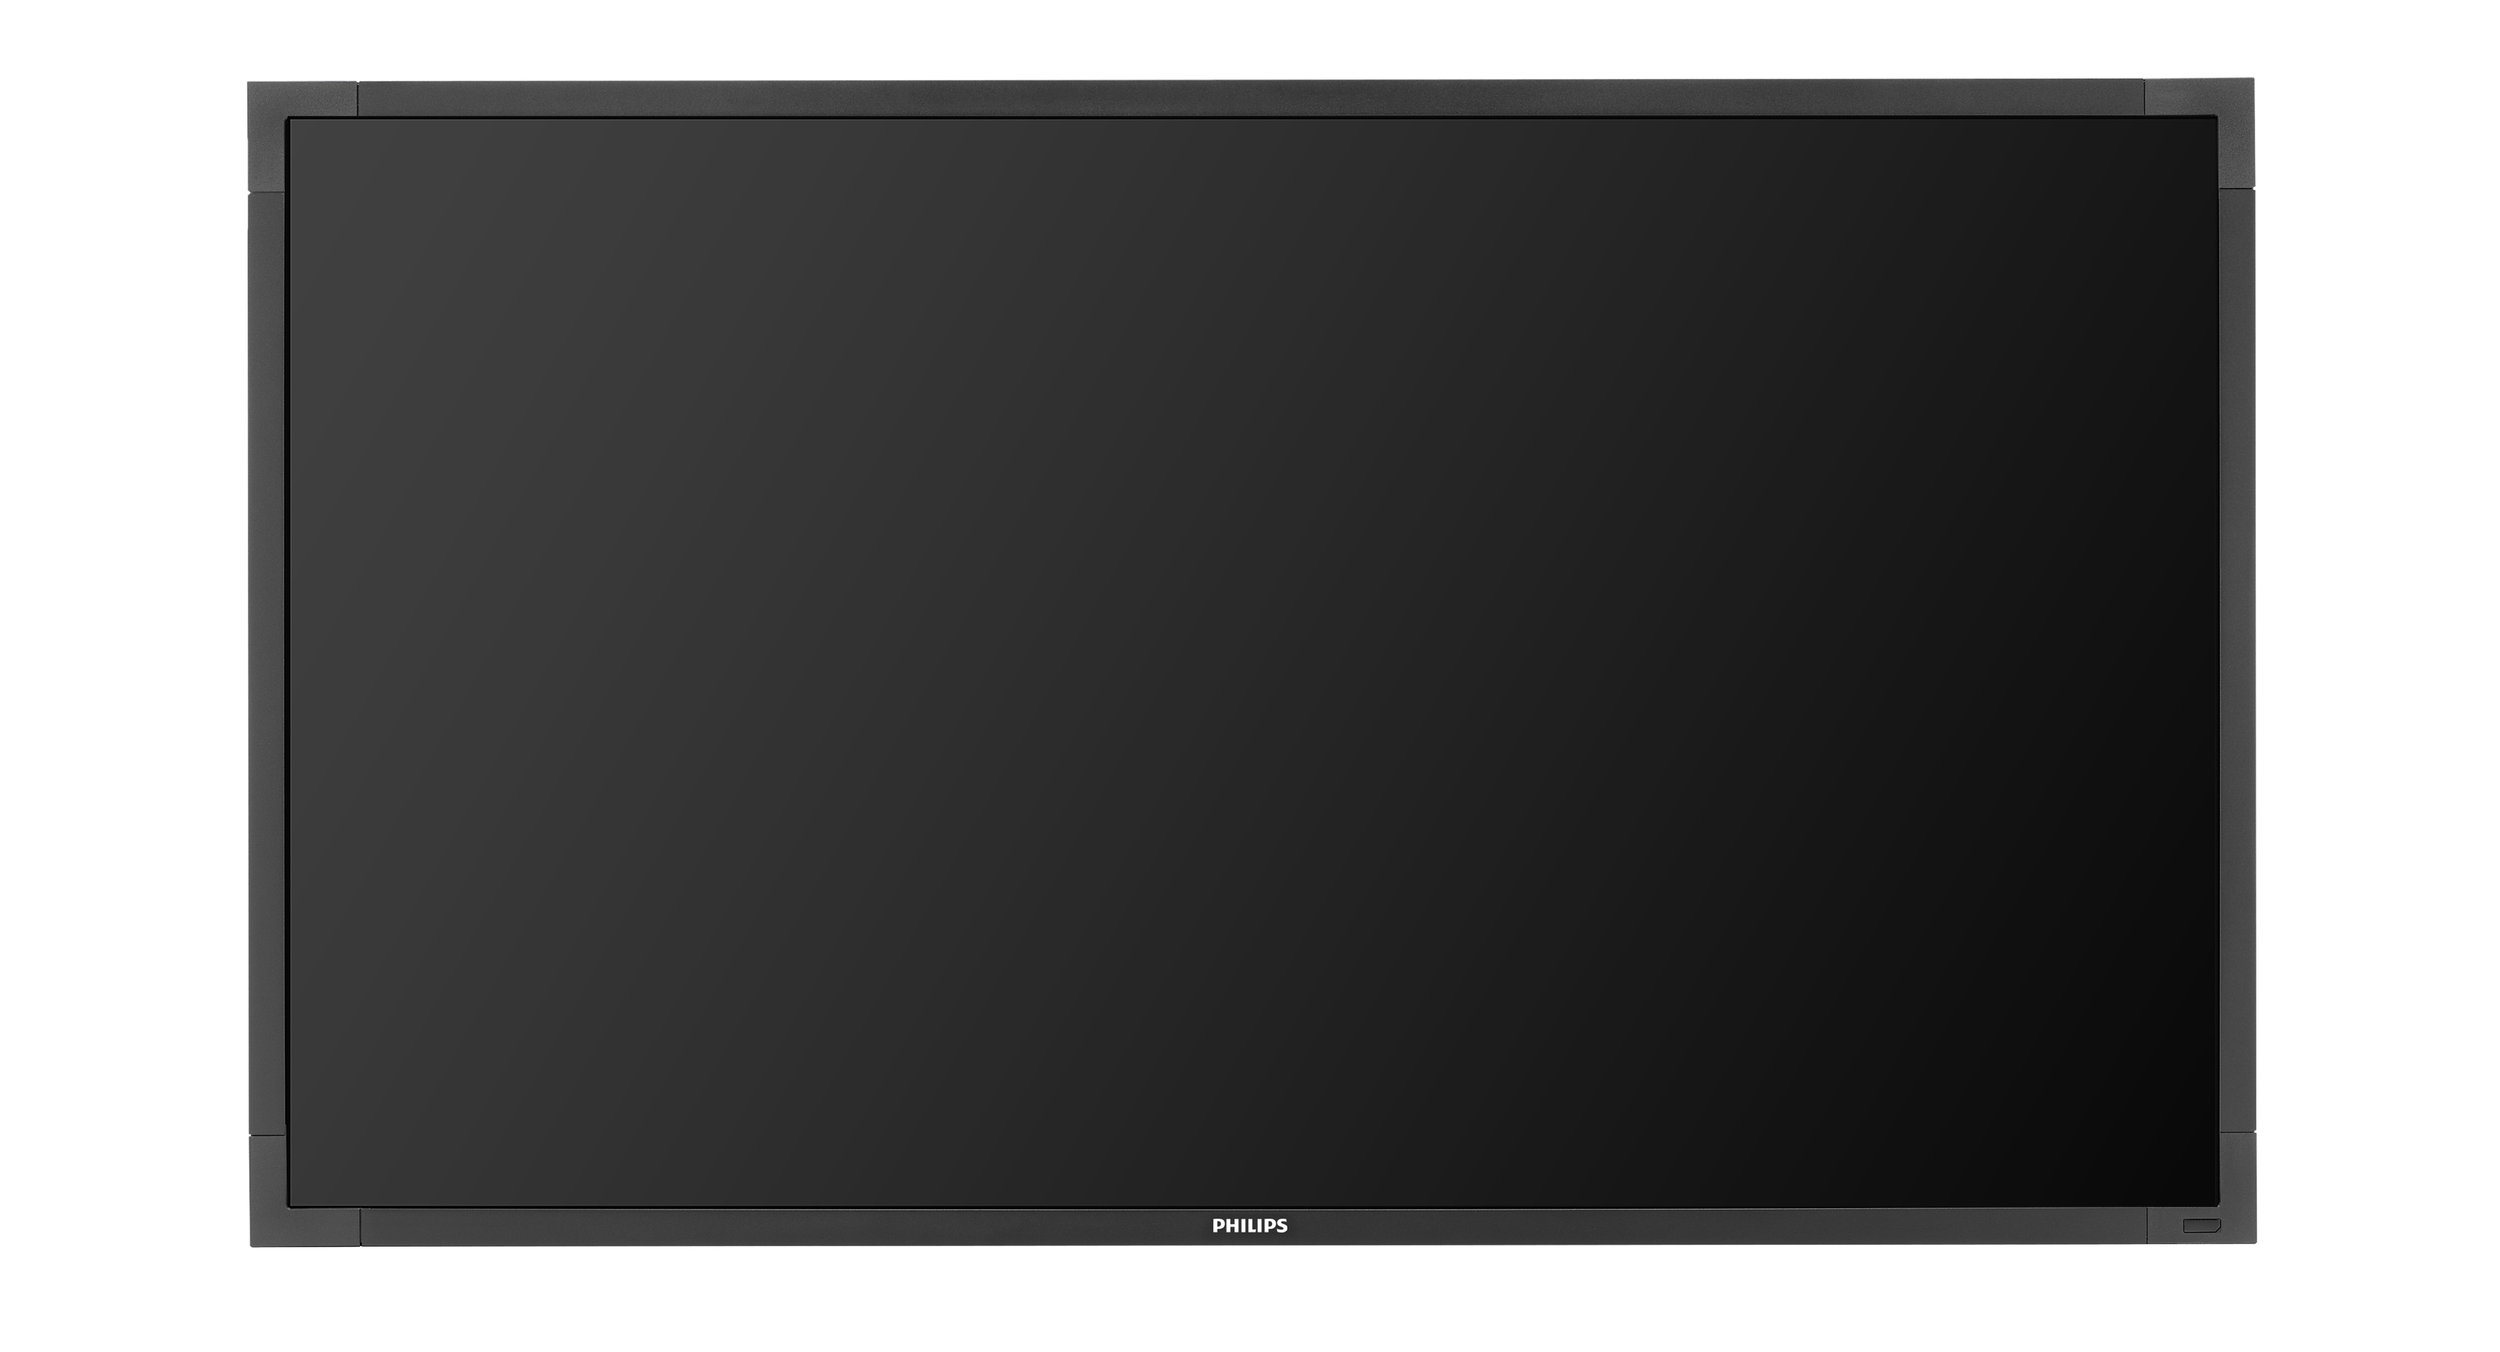 Philips-75BDL3151T-front-blank.jpg